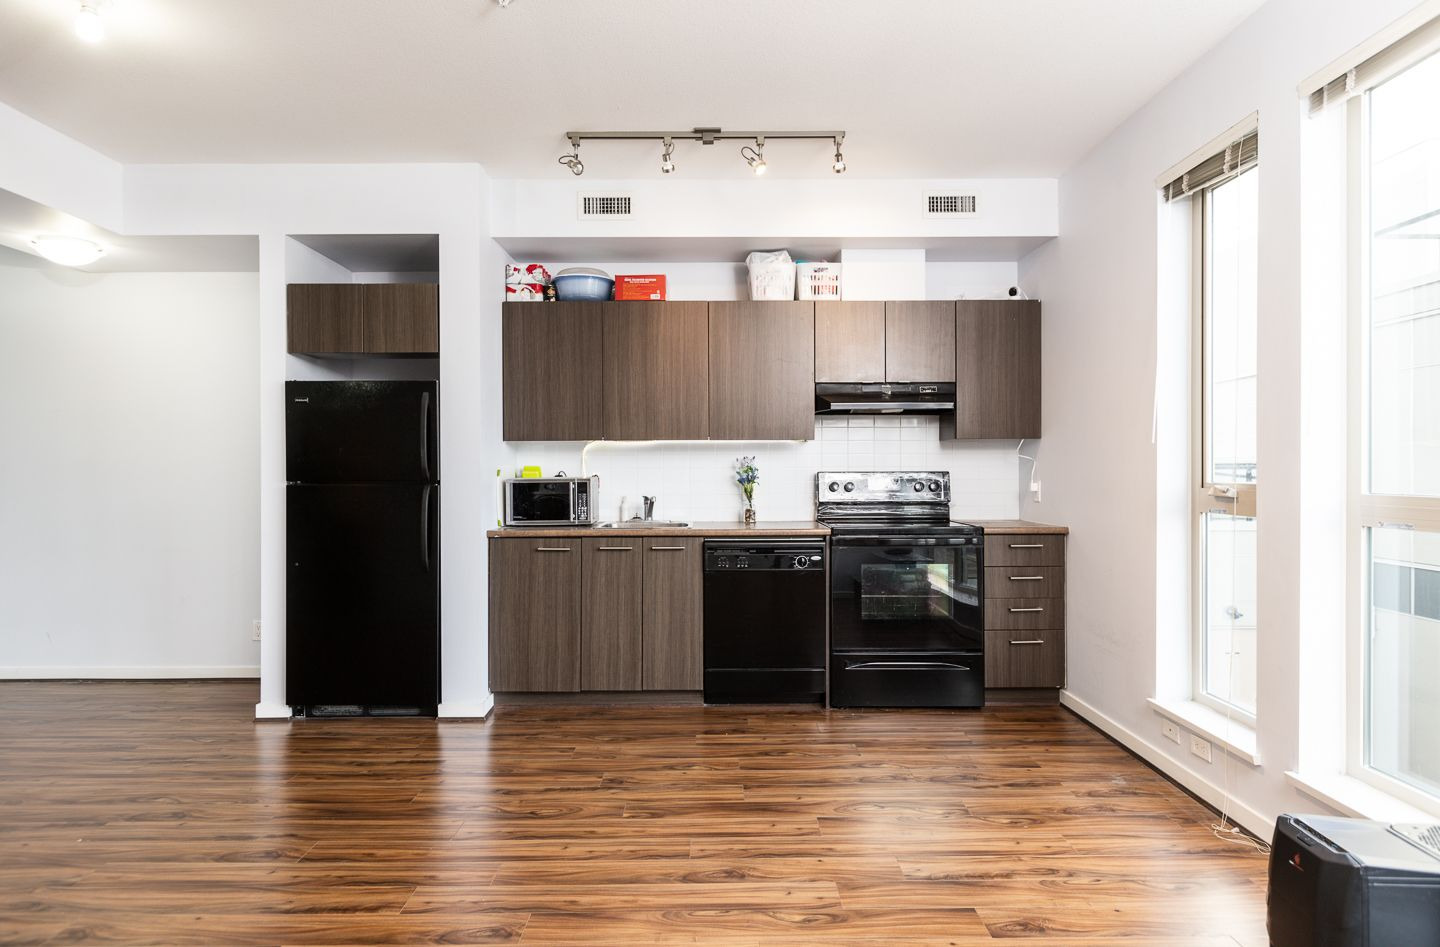 """Photo 2: Photos: 398 4133 STOLBERG Street in Richmond: West Cambie Condo for sale in """"REMY"""" : MLS®# R2346202"""